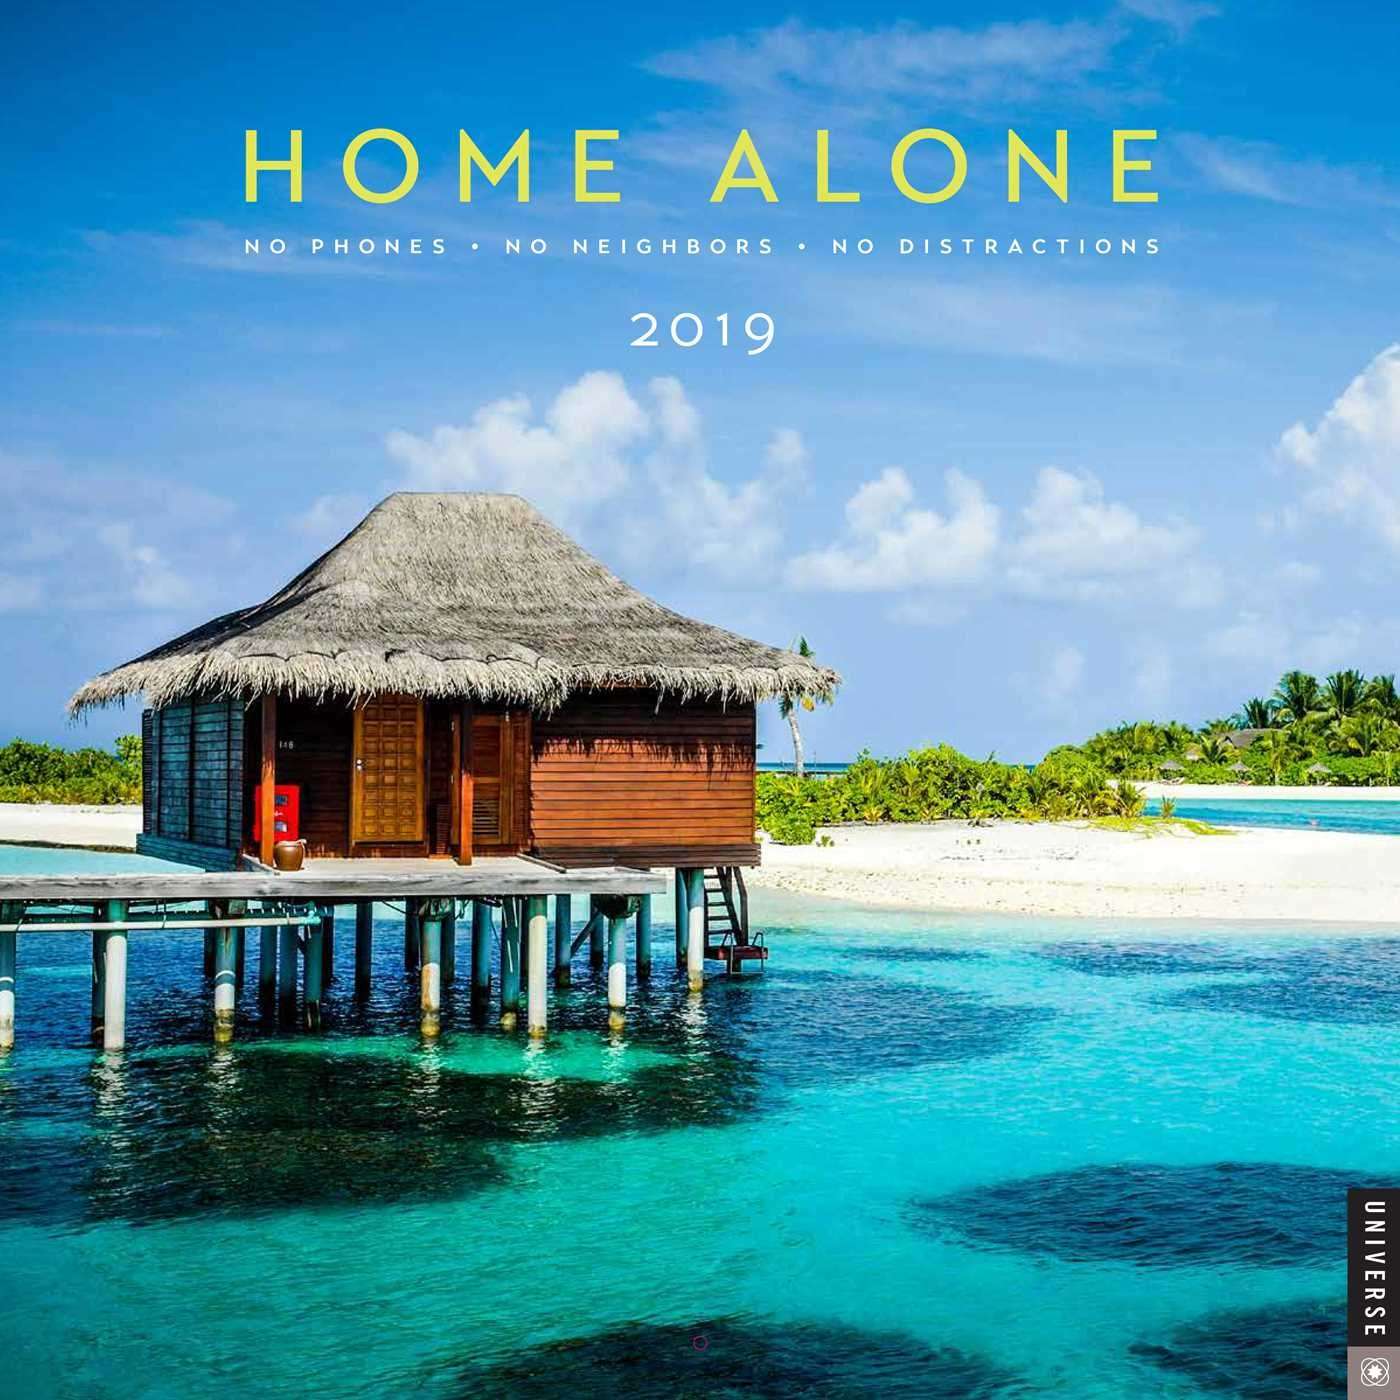 Home Alone 2019 Wall Calendar Universe Publishing 9780789334862